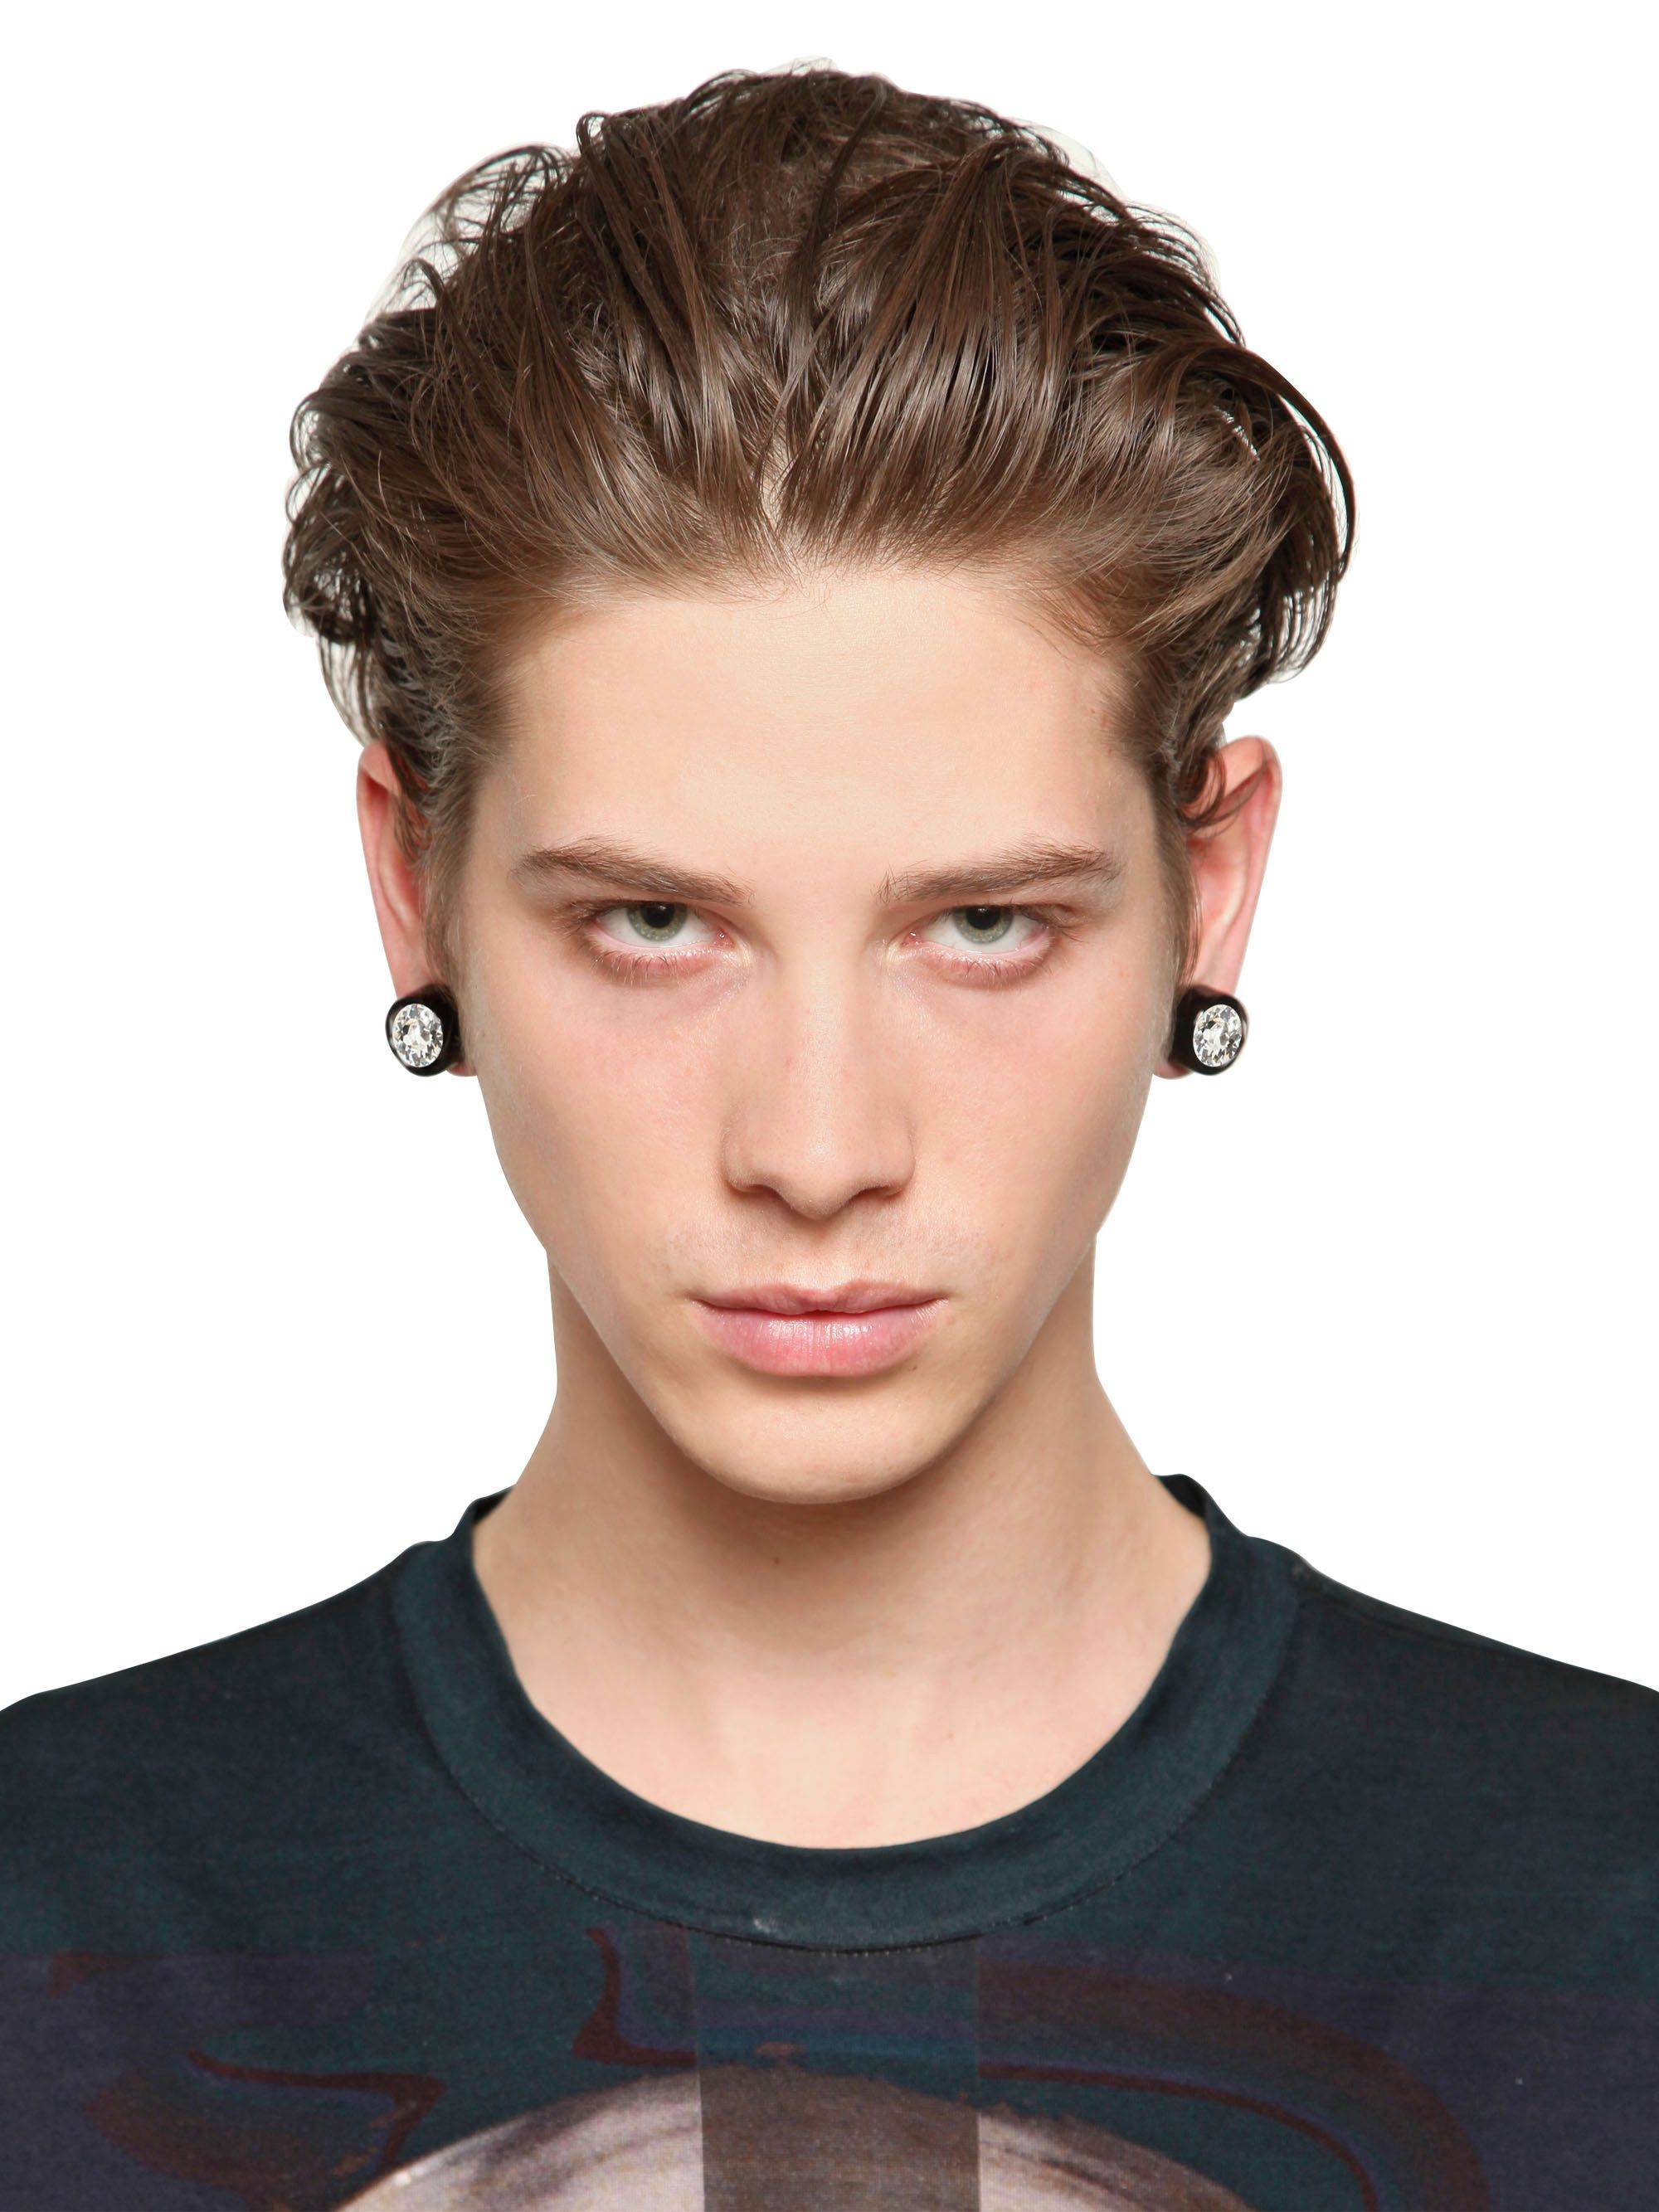 Givenchy Svarowsi Crystals Magnetic Earrings Lyst Men S Givenchy Jewelry  From 162 Lyst